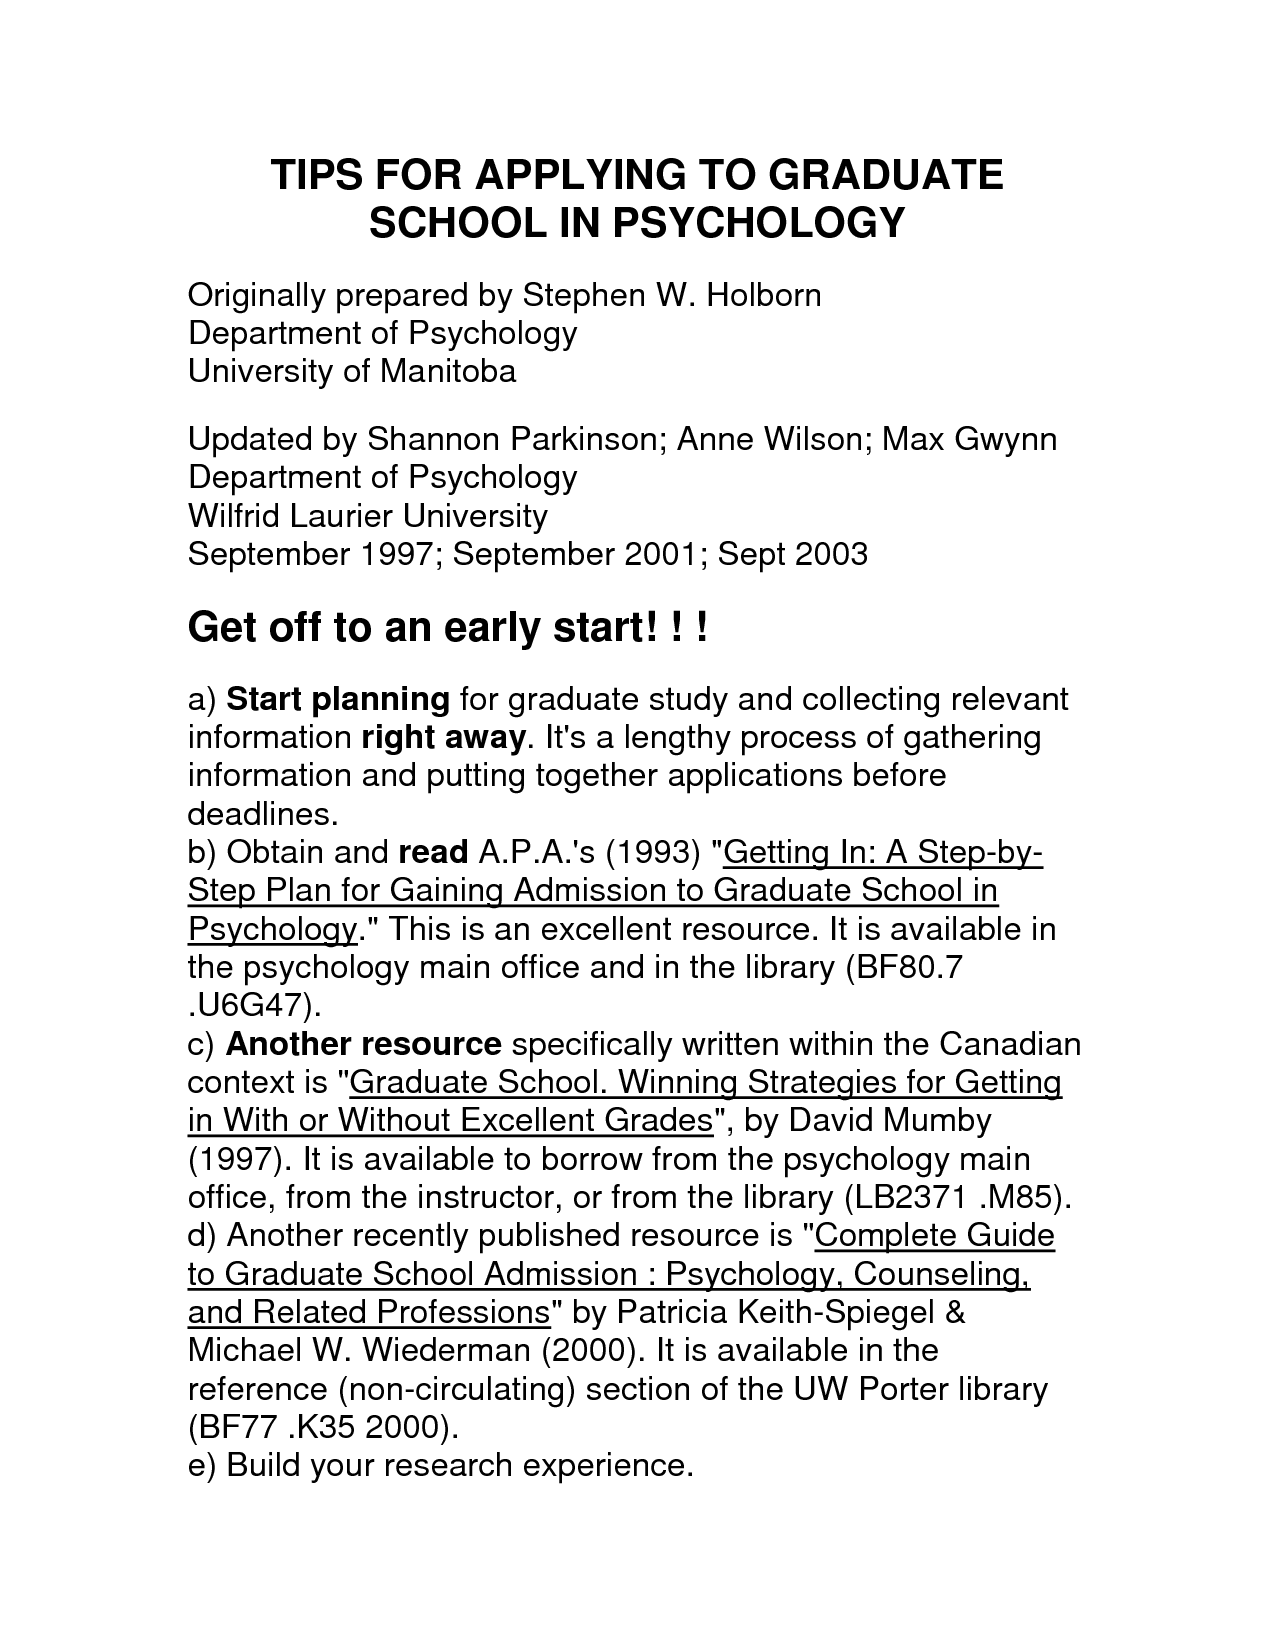 Explore School Application, Cover Letters, And More! Psychology Graduate  School Resume ...  Graduate School Application Resume